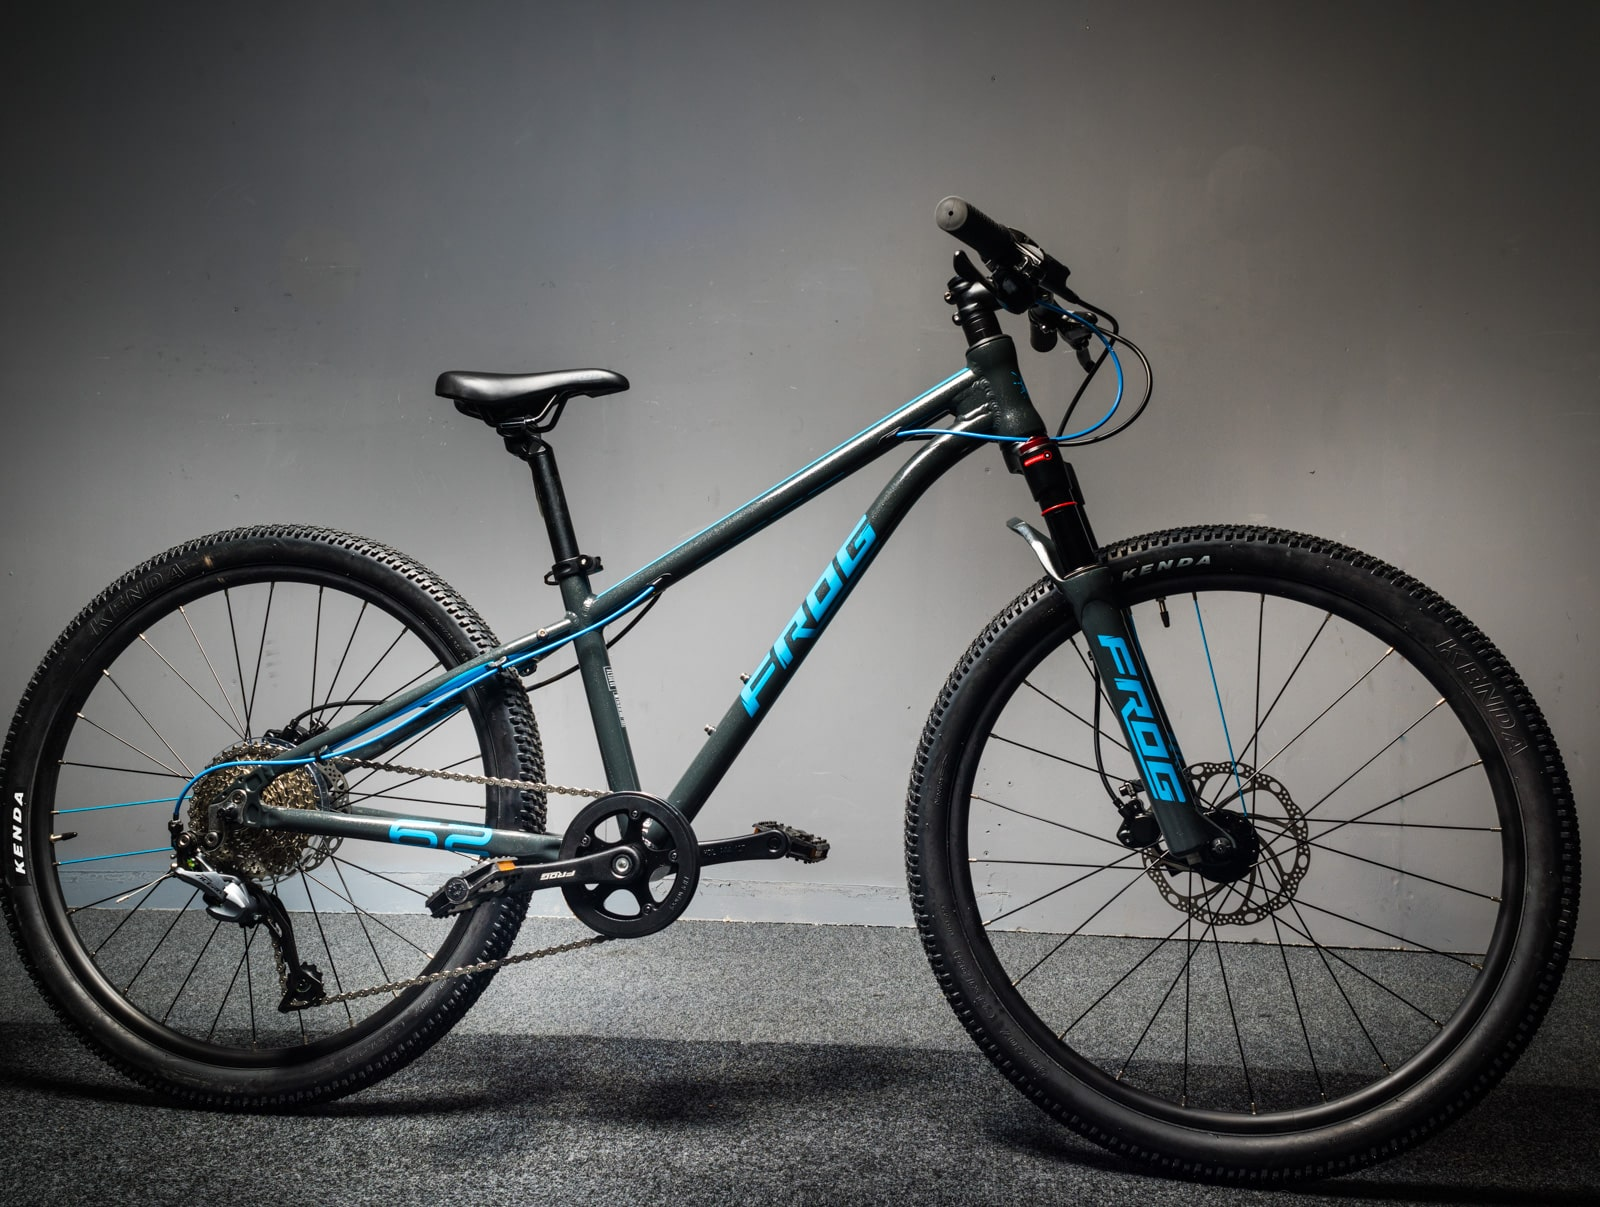 New Frog Mountain Bikes - Now in stock!